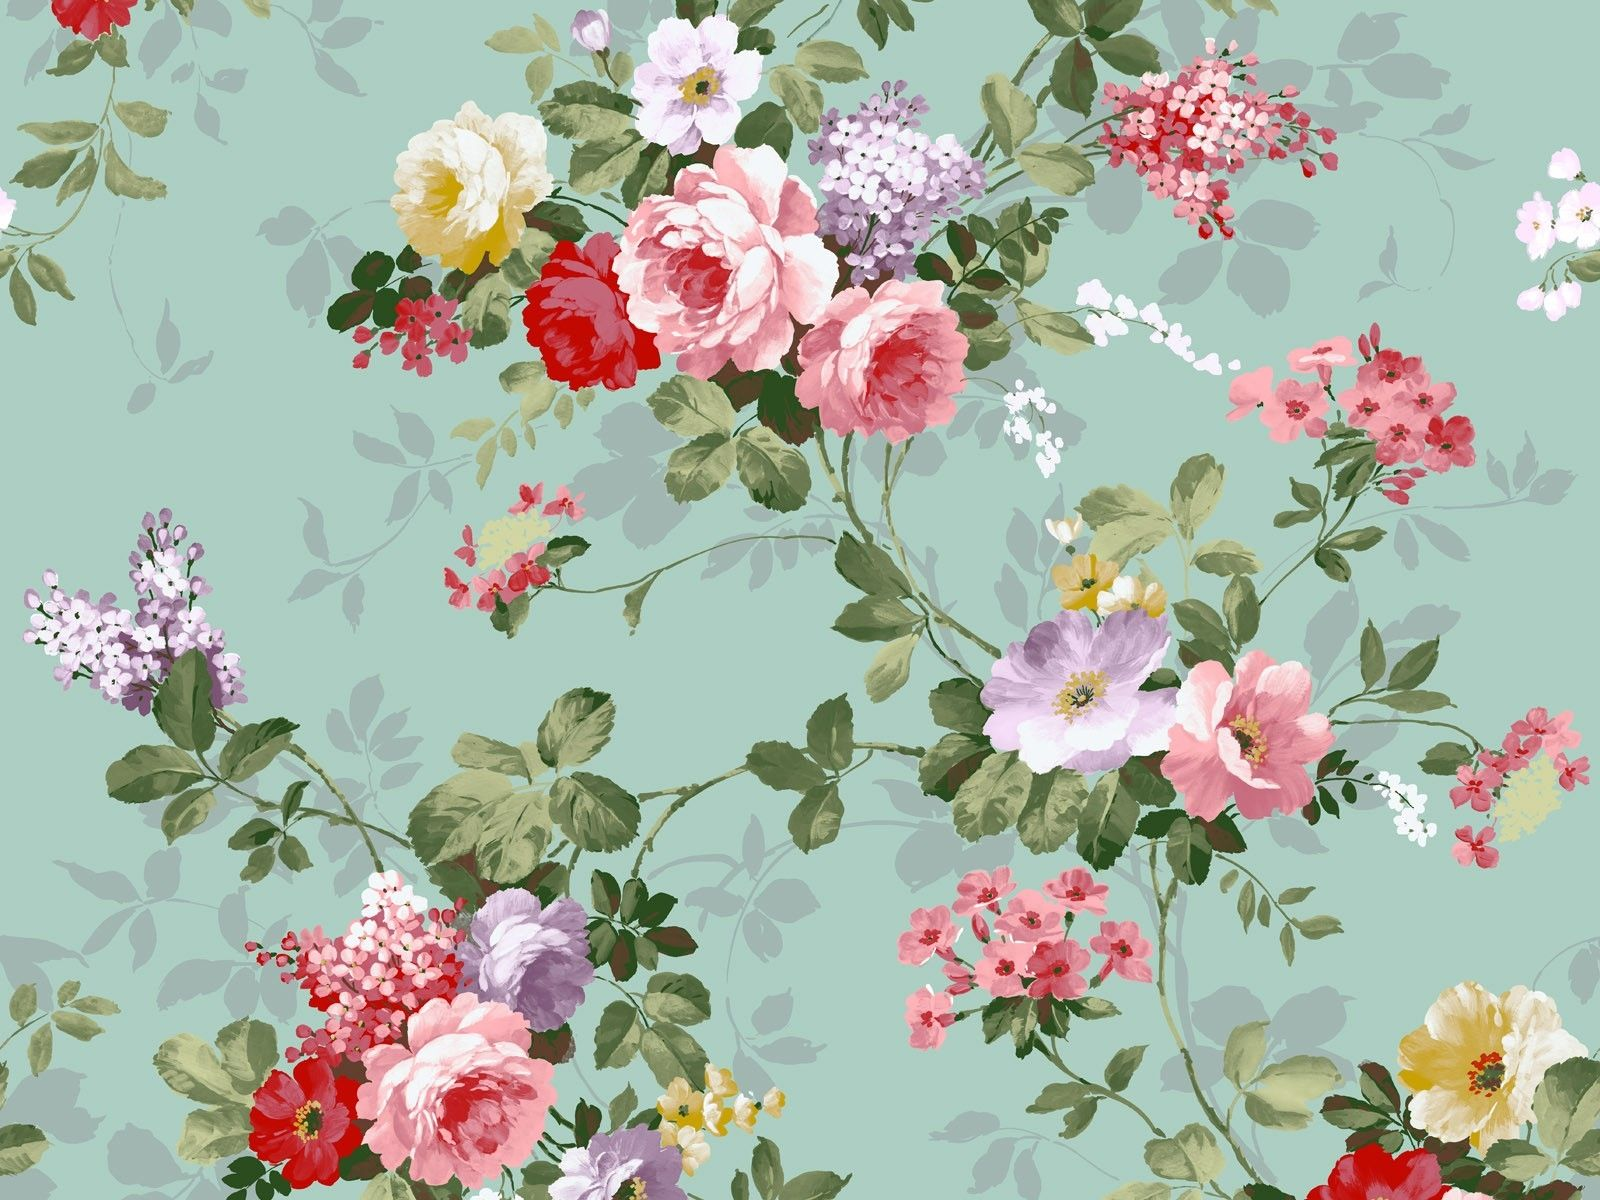 Vintage floral iphone wallpaper tumblr - Amazing Vintage Floral Iphone Wallpaper Tumblr